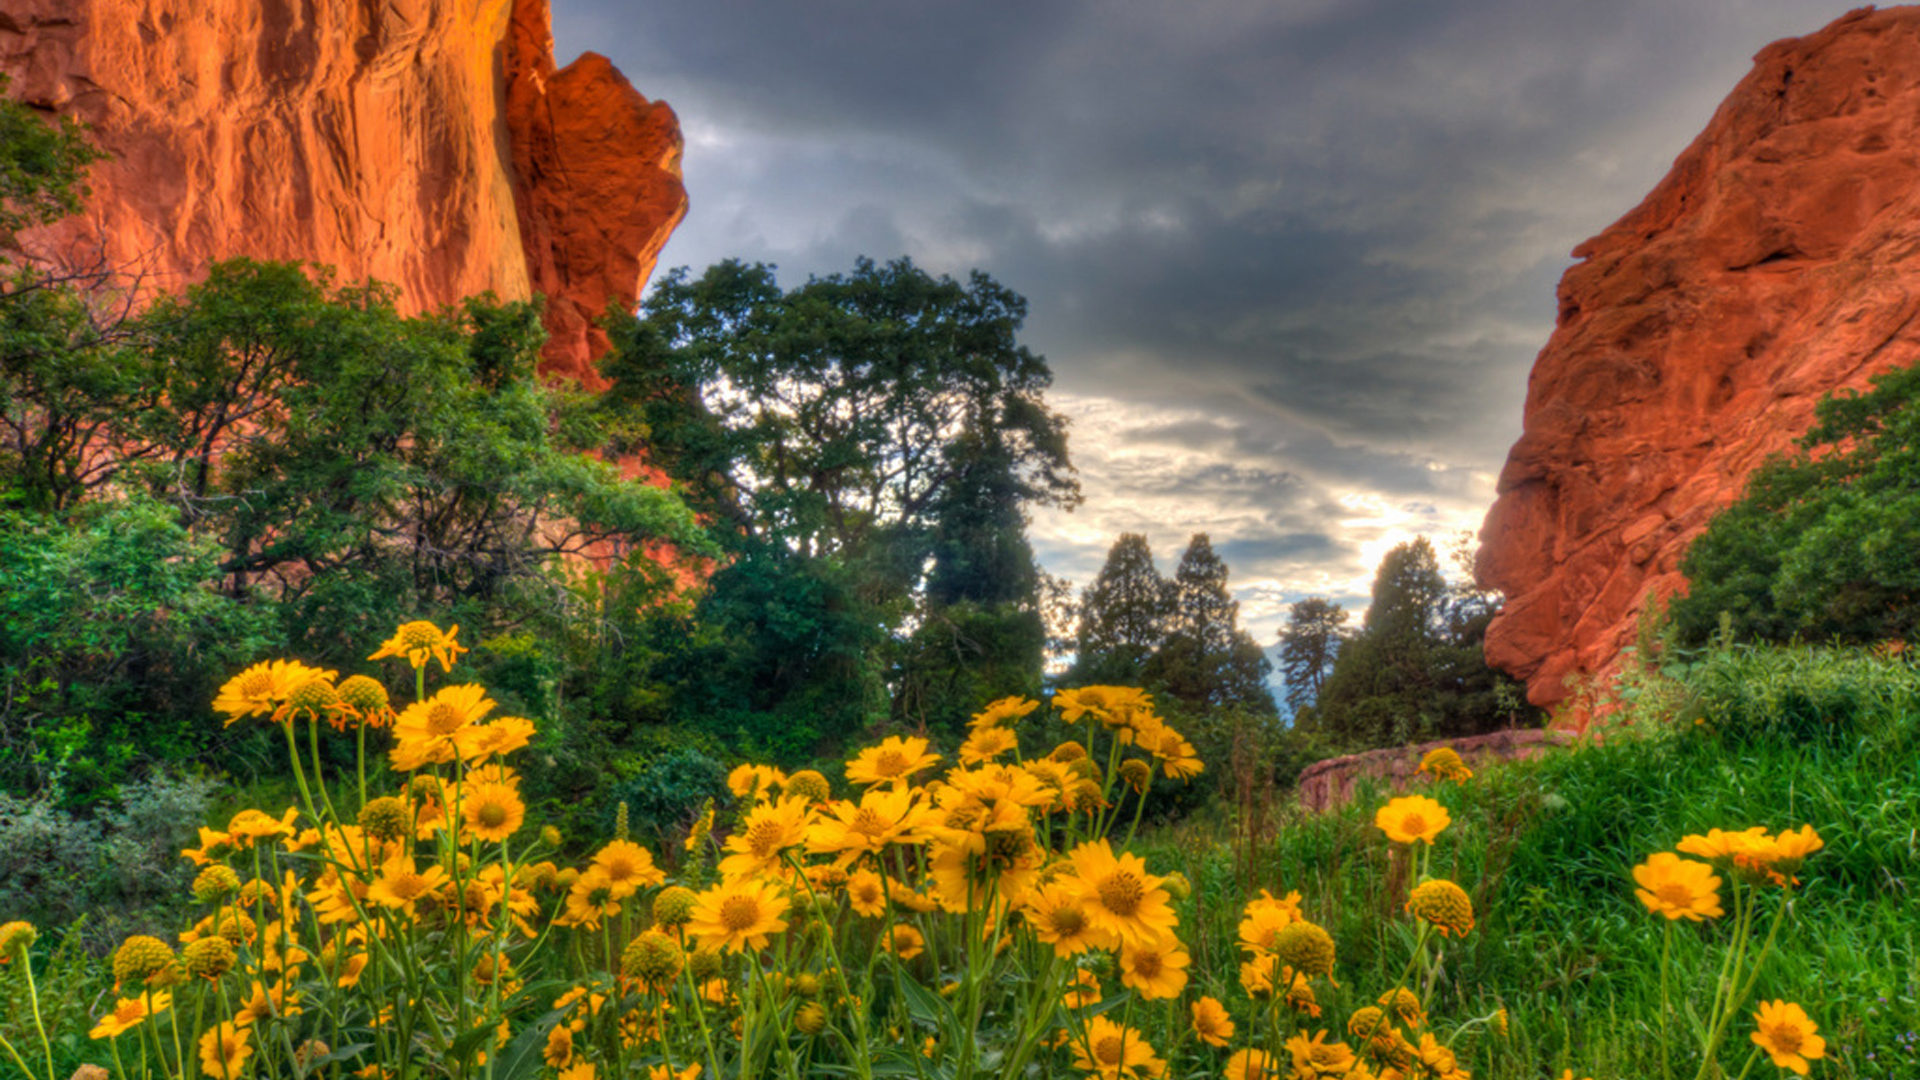 Fall Wallpaper Dual Monitor Spring Flowers In The Garden Of The Gods In Colorado